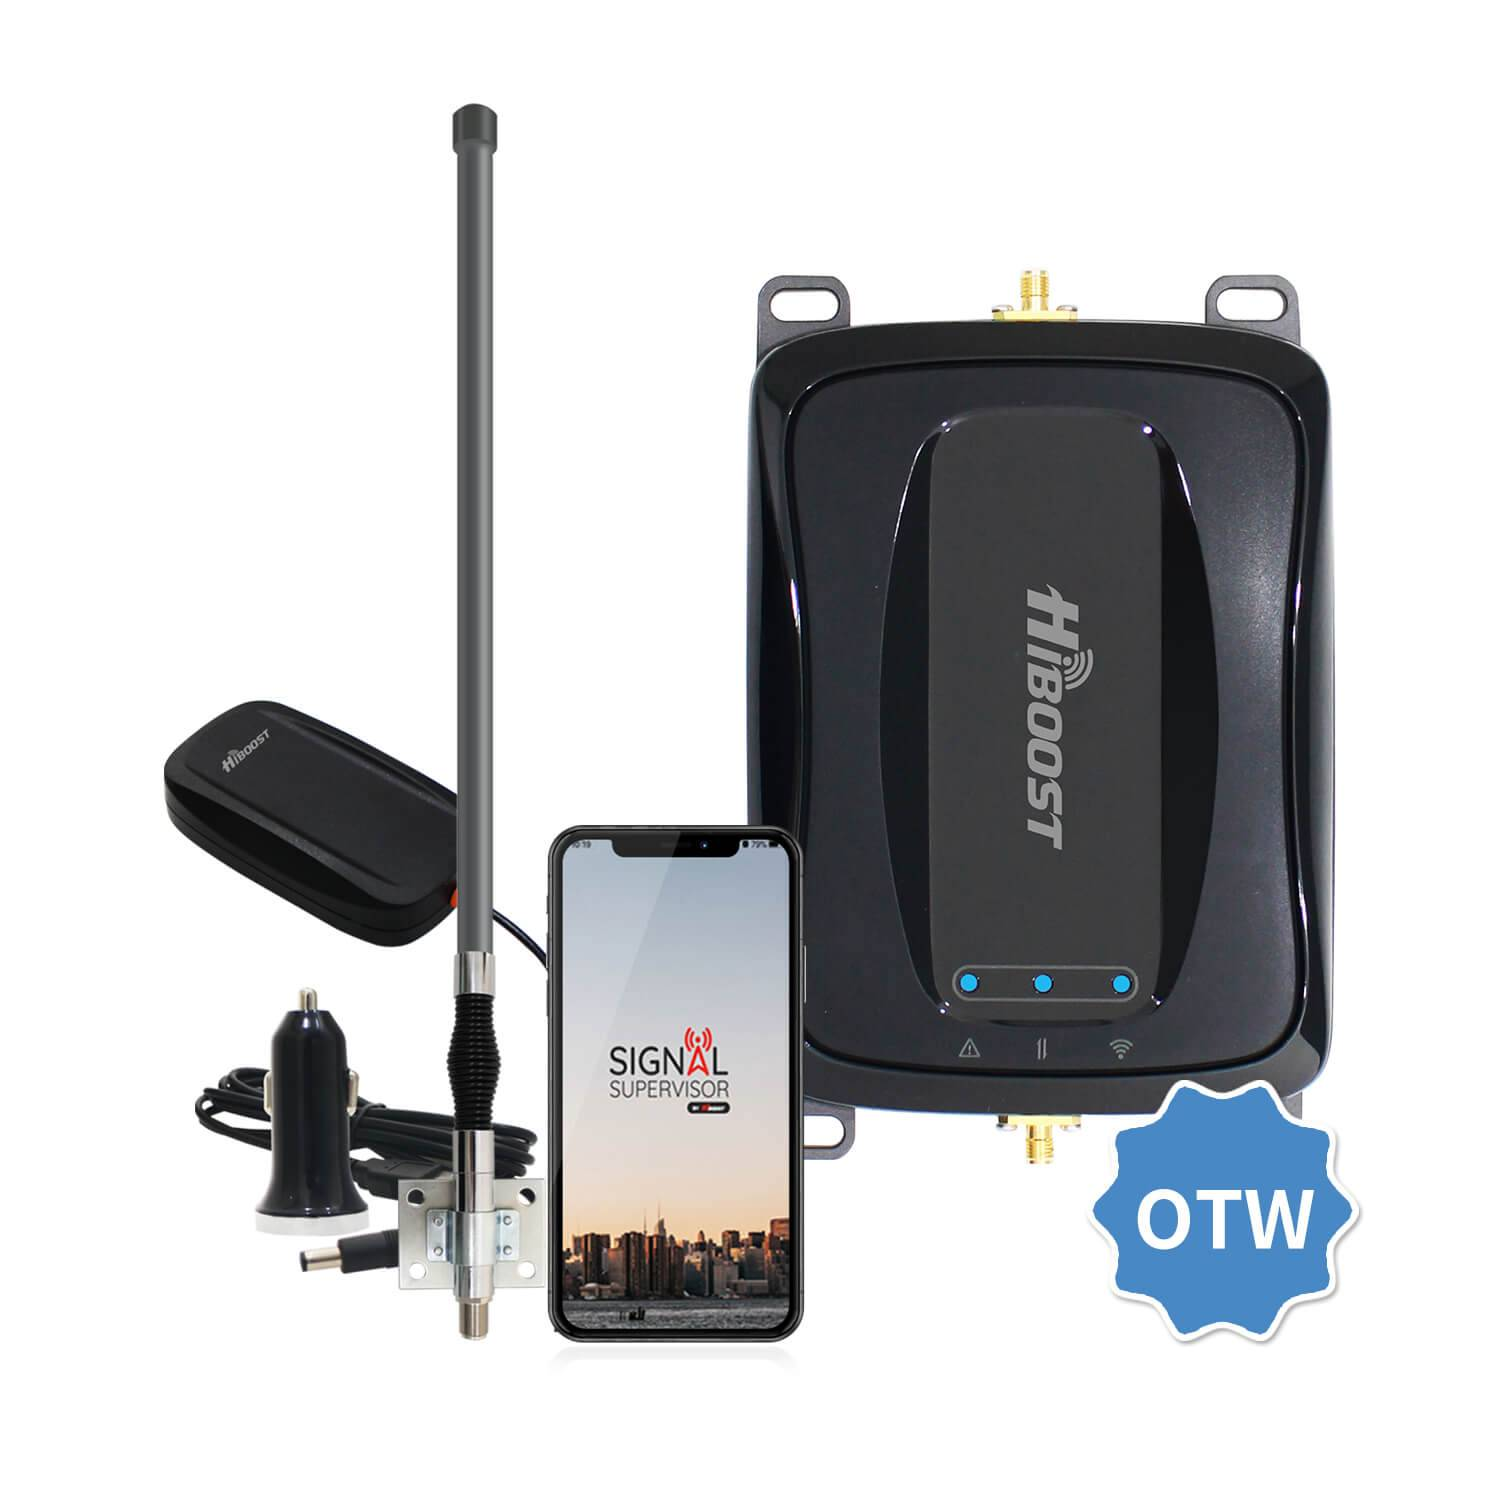 HiBoost Cell Phone Signal Booster for RV Trucks, Travel 4G 2.0 OTW for RV Truck Van Signal Booster, AT&T T-Mobile Sprint Verizon Truck Cell Phone Amplifier